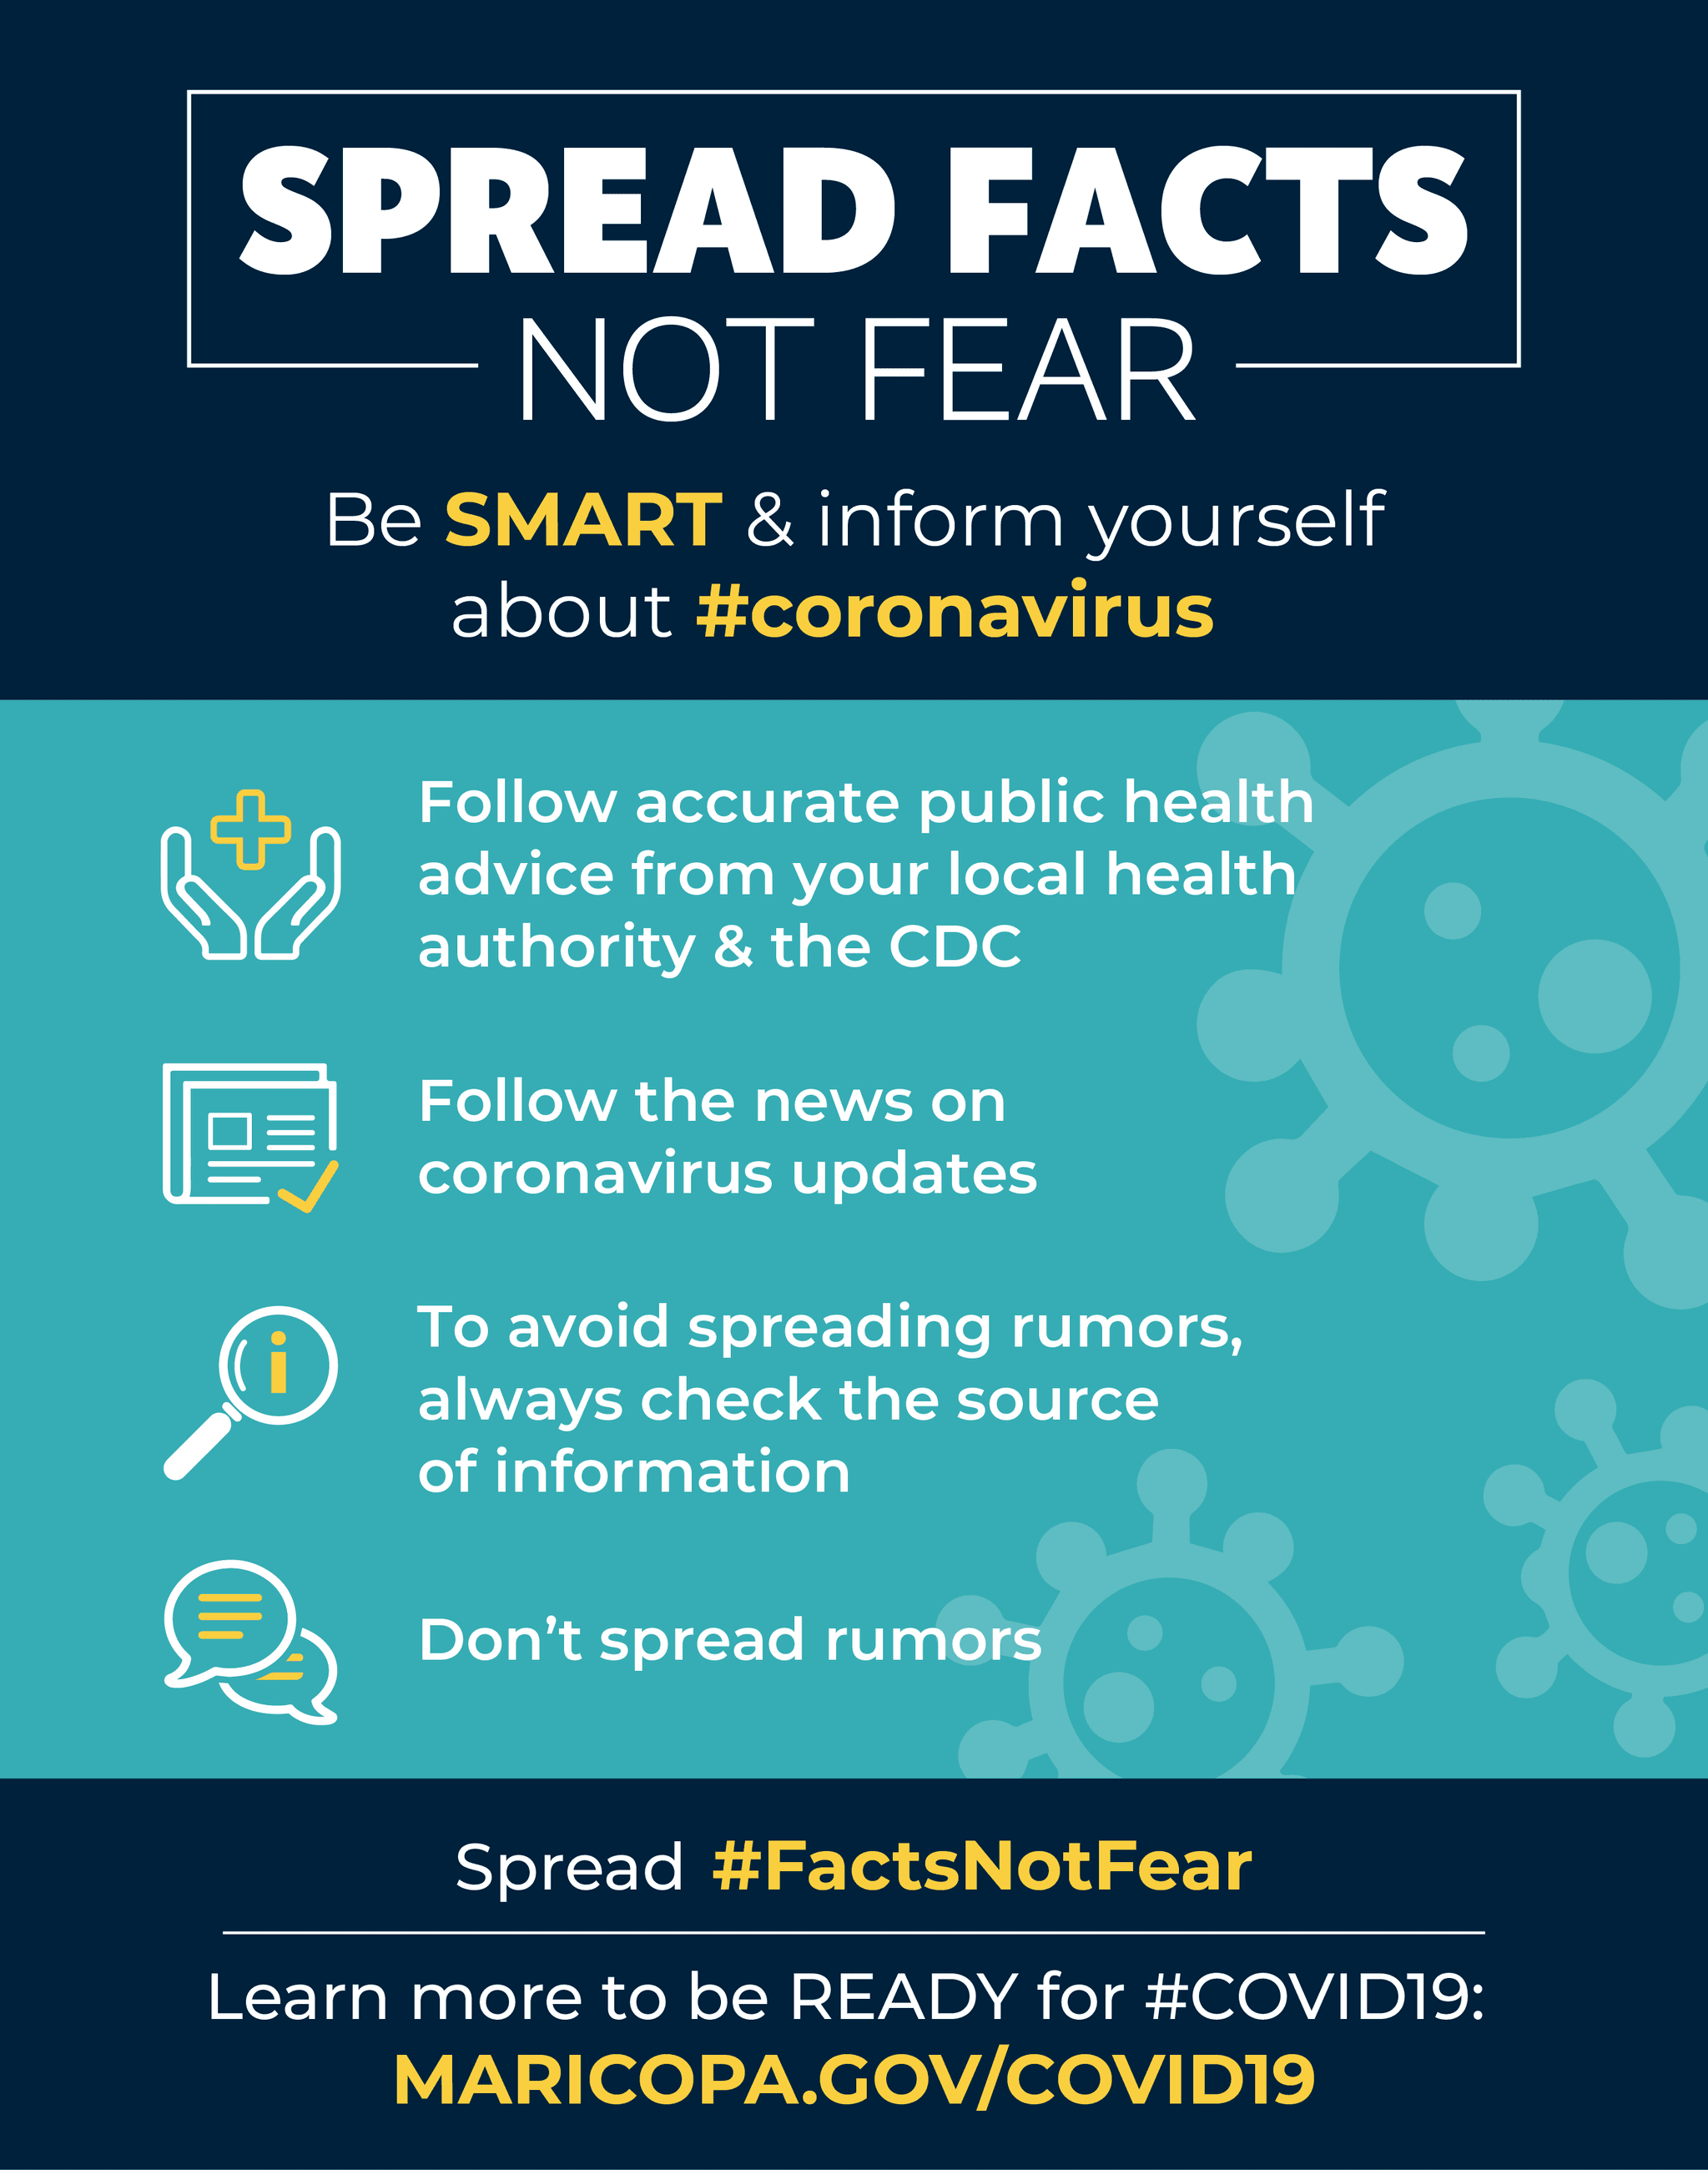 Spread Facts Not Fear